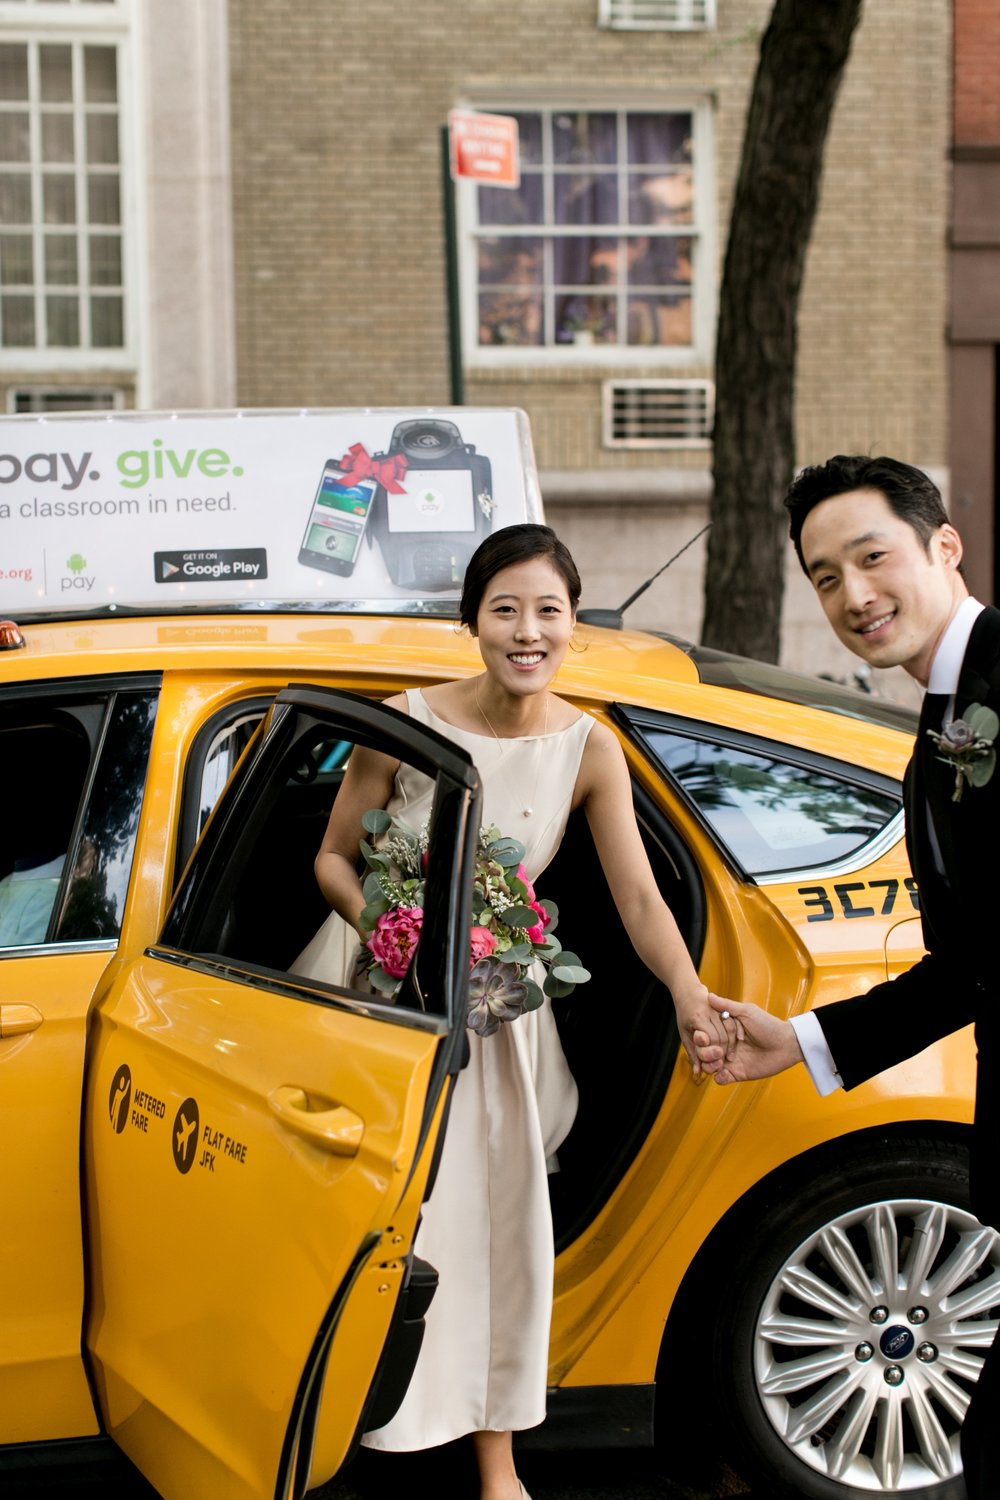 Leonard + Michelle Wedding leaving taxi cab by Brookelyn Photography